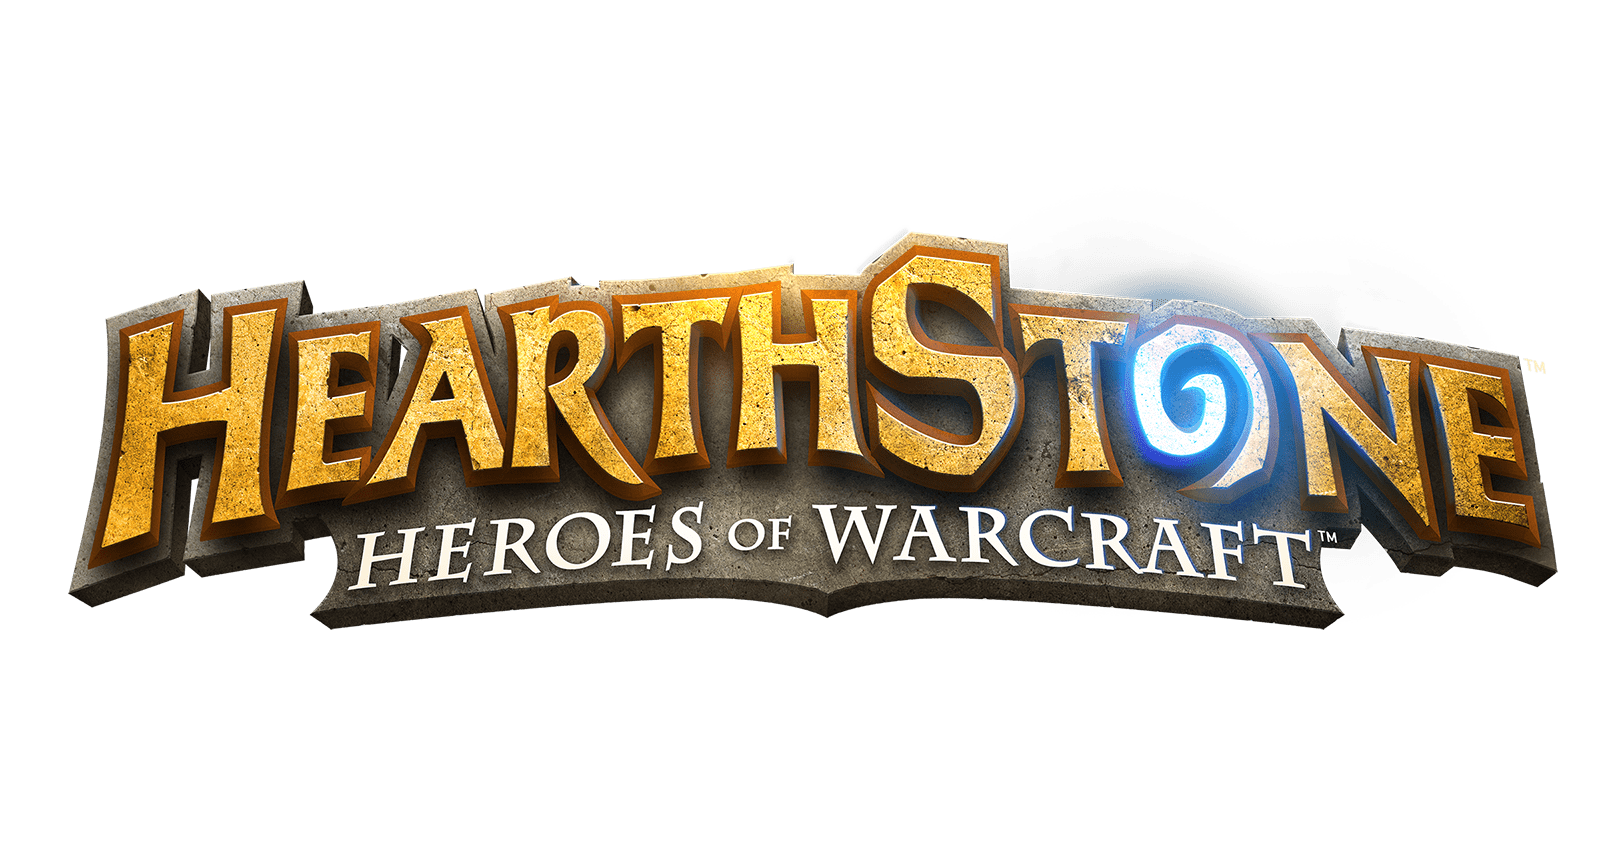 Hearthstone Logo Heroes Of Warcraft Transparent Png Stickpng Hearthstone sells goods and services of dinnerware. stickpng